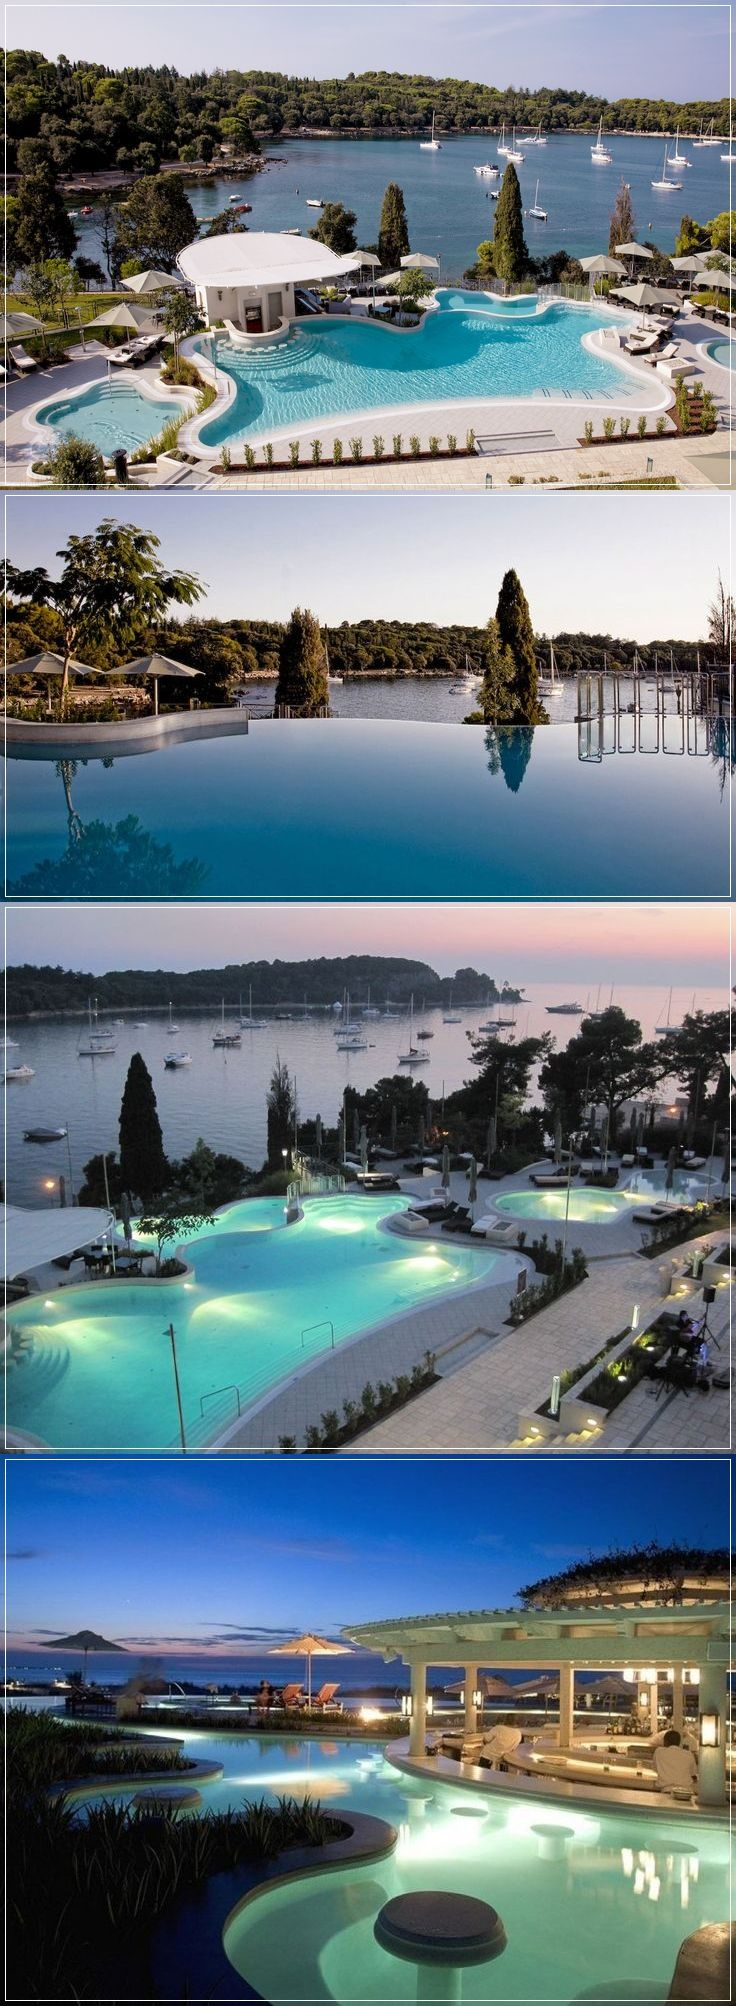 Hotel Monte Mulini, Rovinj, Croatia. To book online, please click the photo. #resort #hotel #vacation #honeymoon #travel #holiday #florence #toscana #italy #hotelroom #romantic #luxuryresort